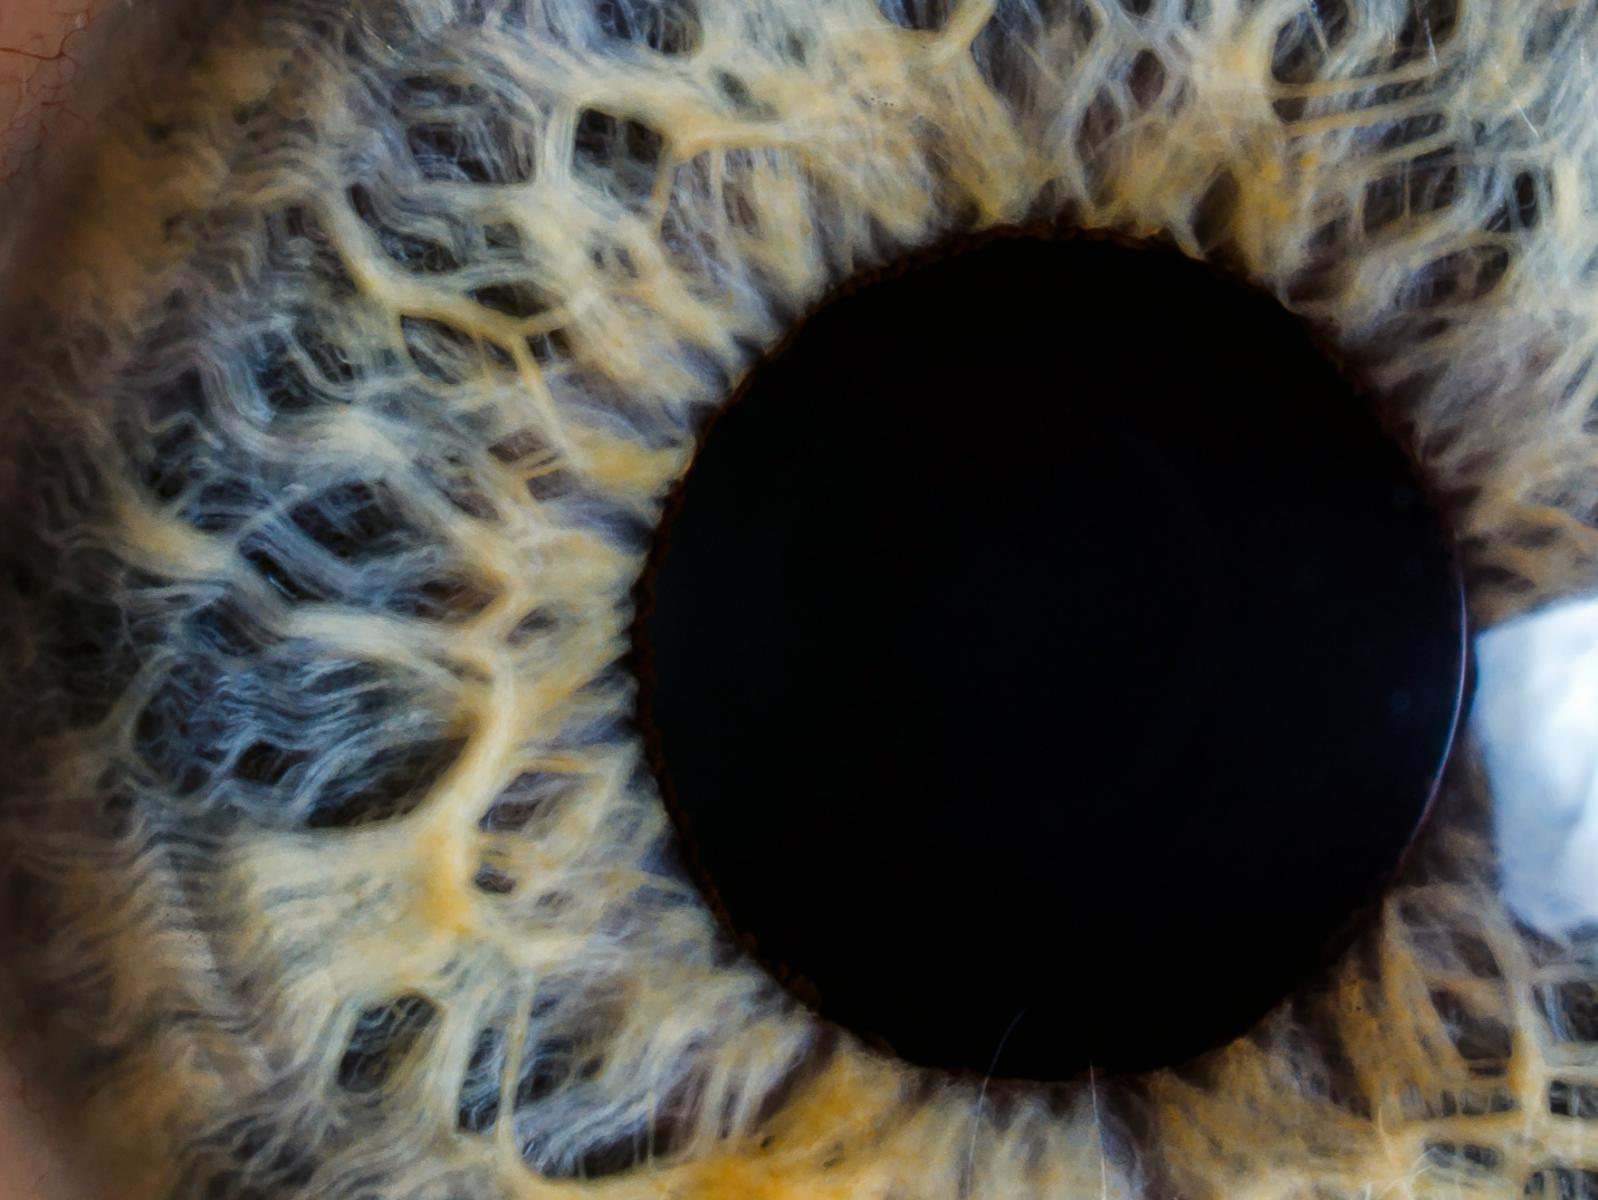 FDA Approves First Artificial Iris for Aniridia